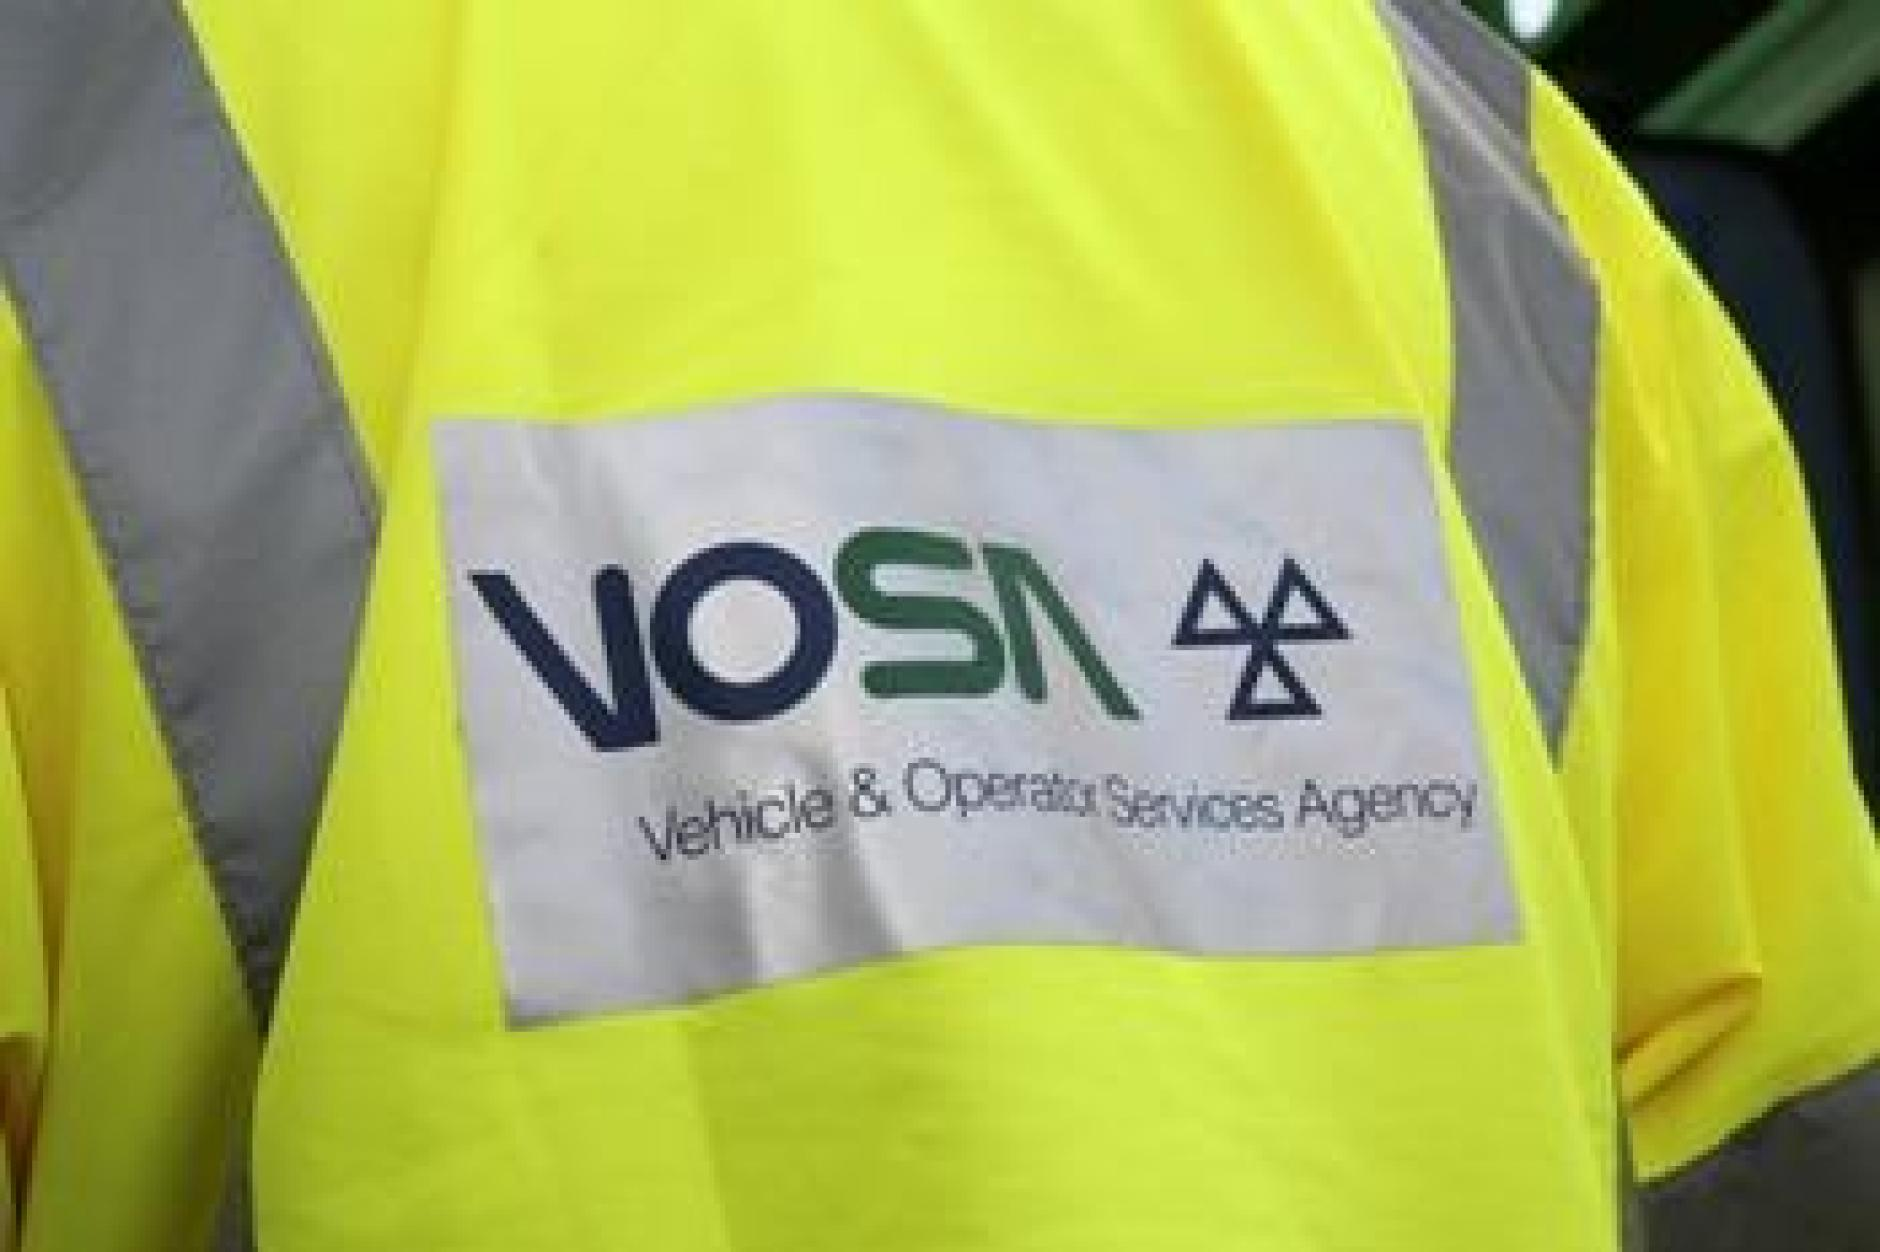 vosa makes updated hgv inspection manual available on line rh commercialmotor com Manual Inspection Effectiveness Pennsylvania Inspection Manual